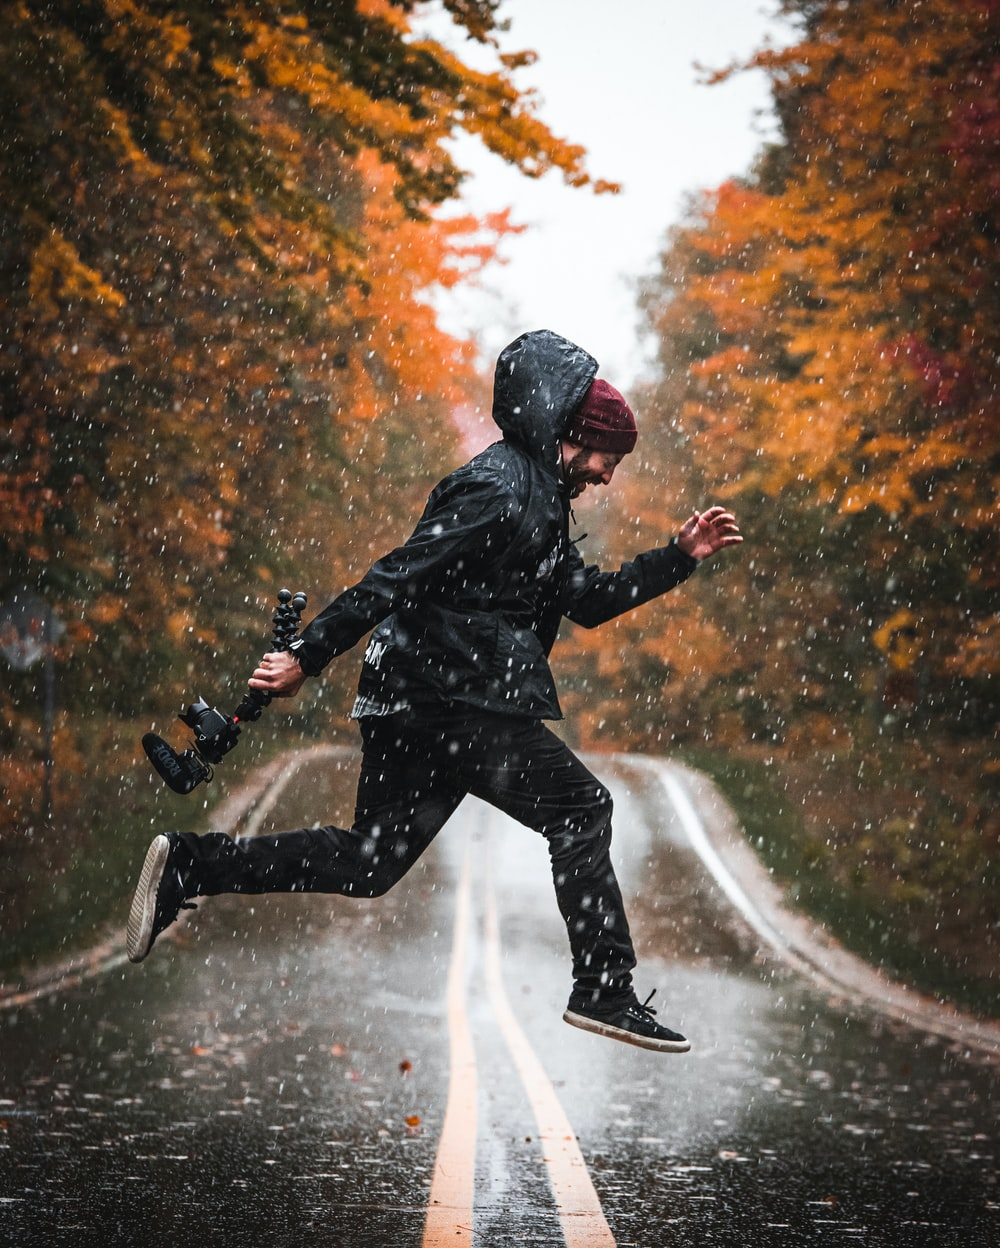 time-lapse photography of man jumping in a road while raining